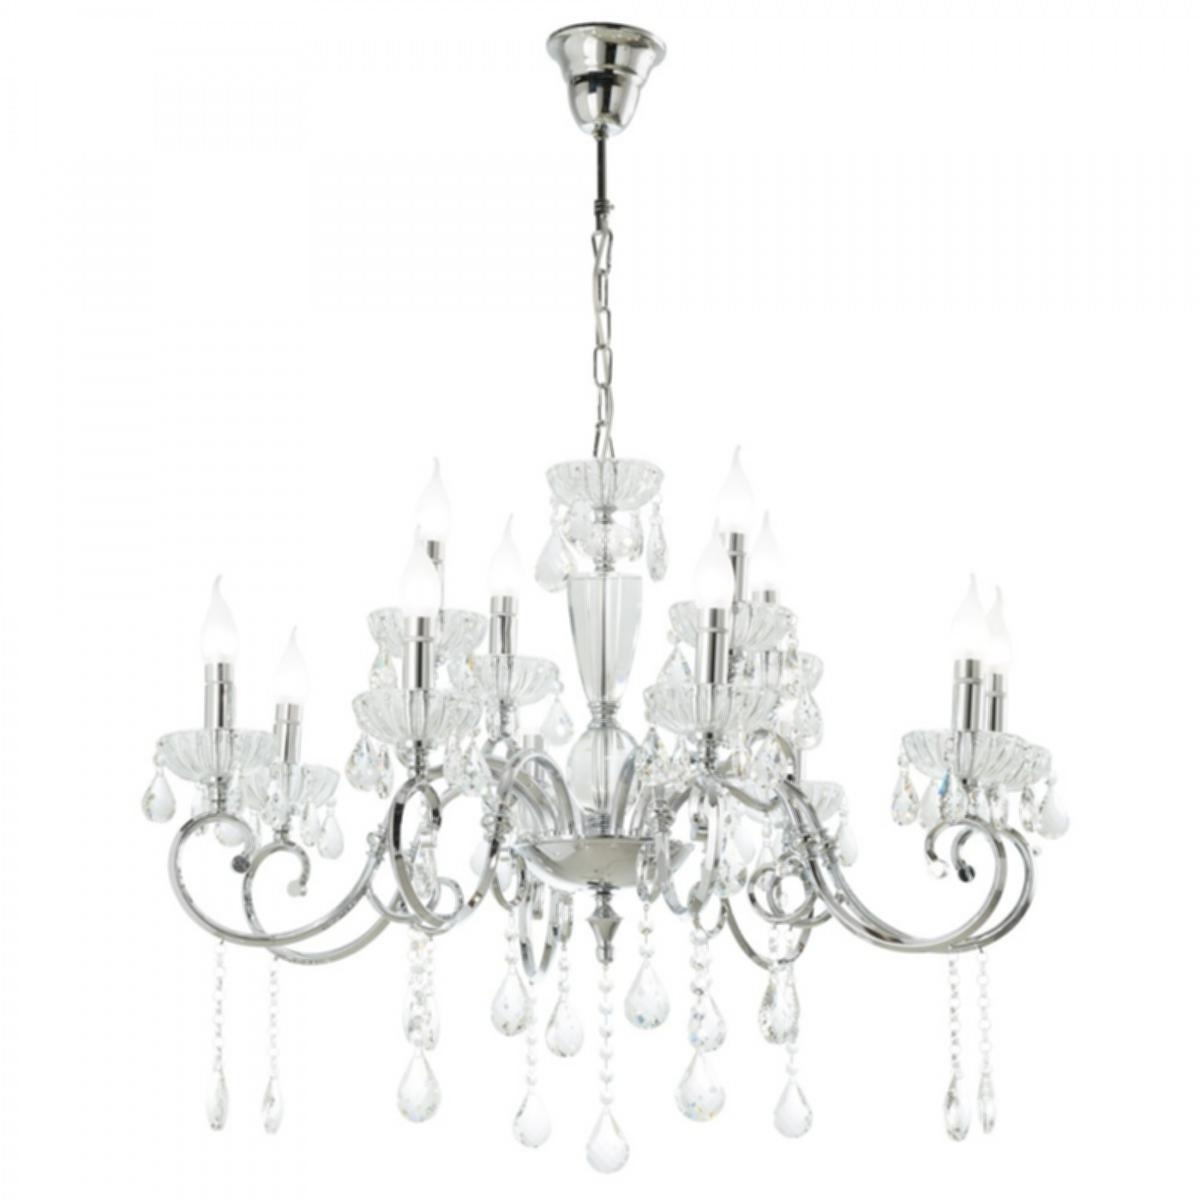 Home Design For Chandelier Accessories (View 7 of 15)